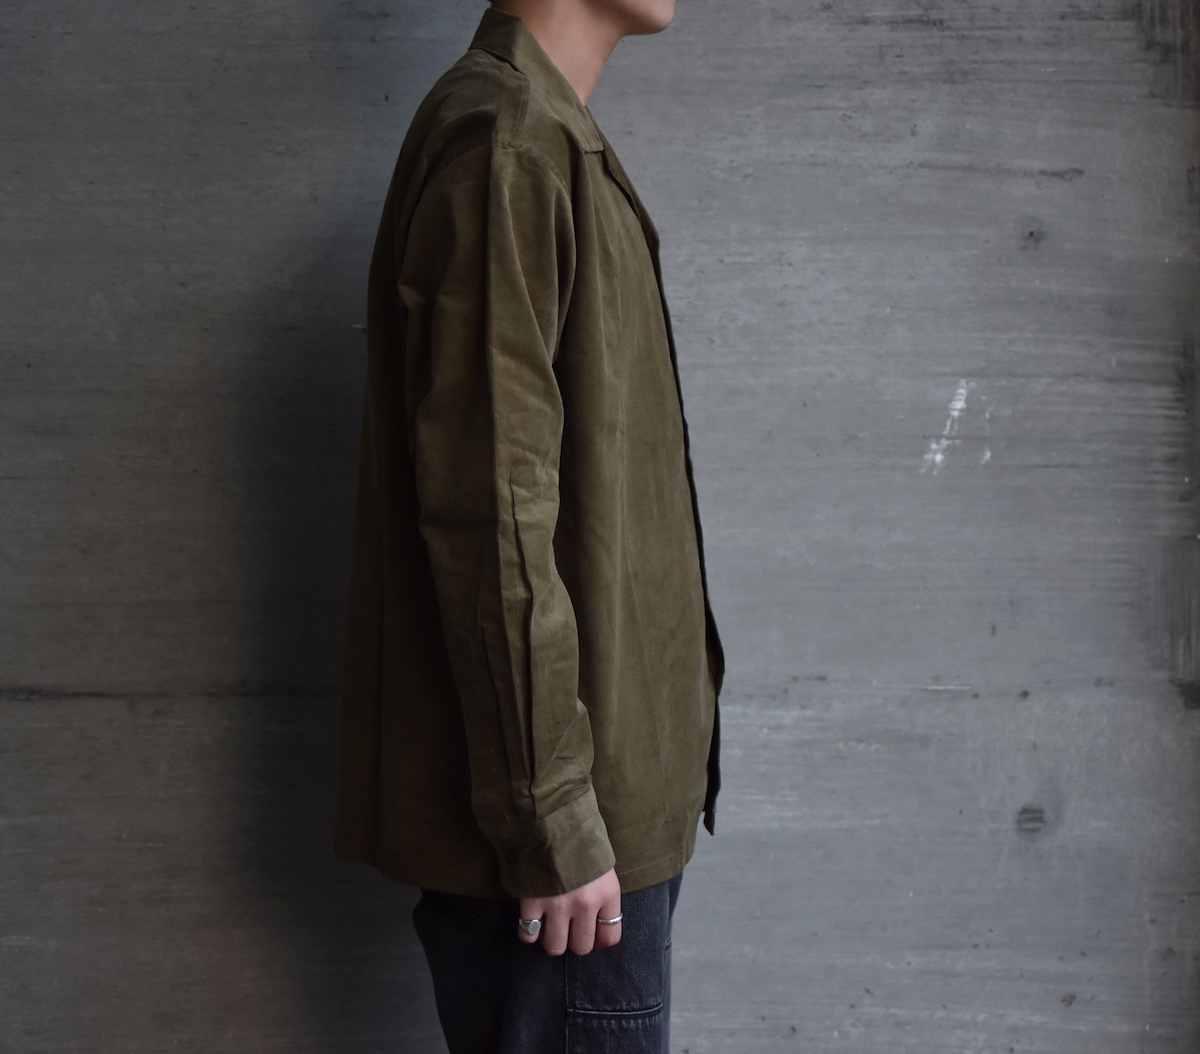 BROWN by 2-tacs 「 OPEN COLLAR / OLIVE 」